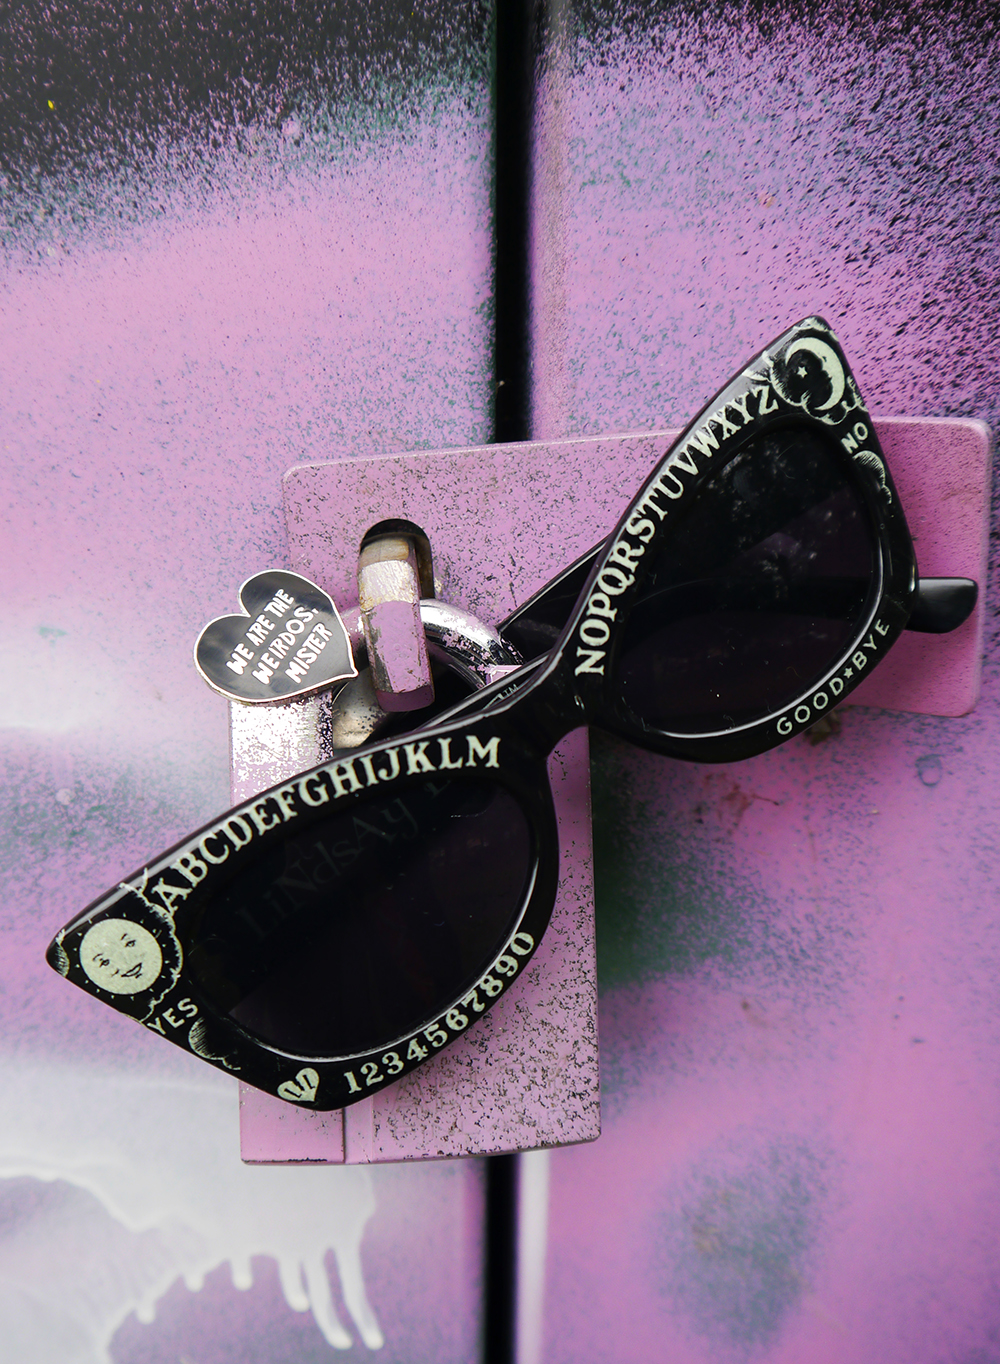 The Craft enamel pin and ouija board sunglasses - accessories for a Nancy Downs inspired Halloween costume